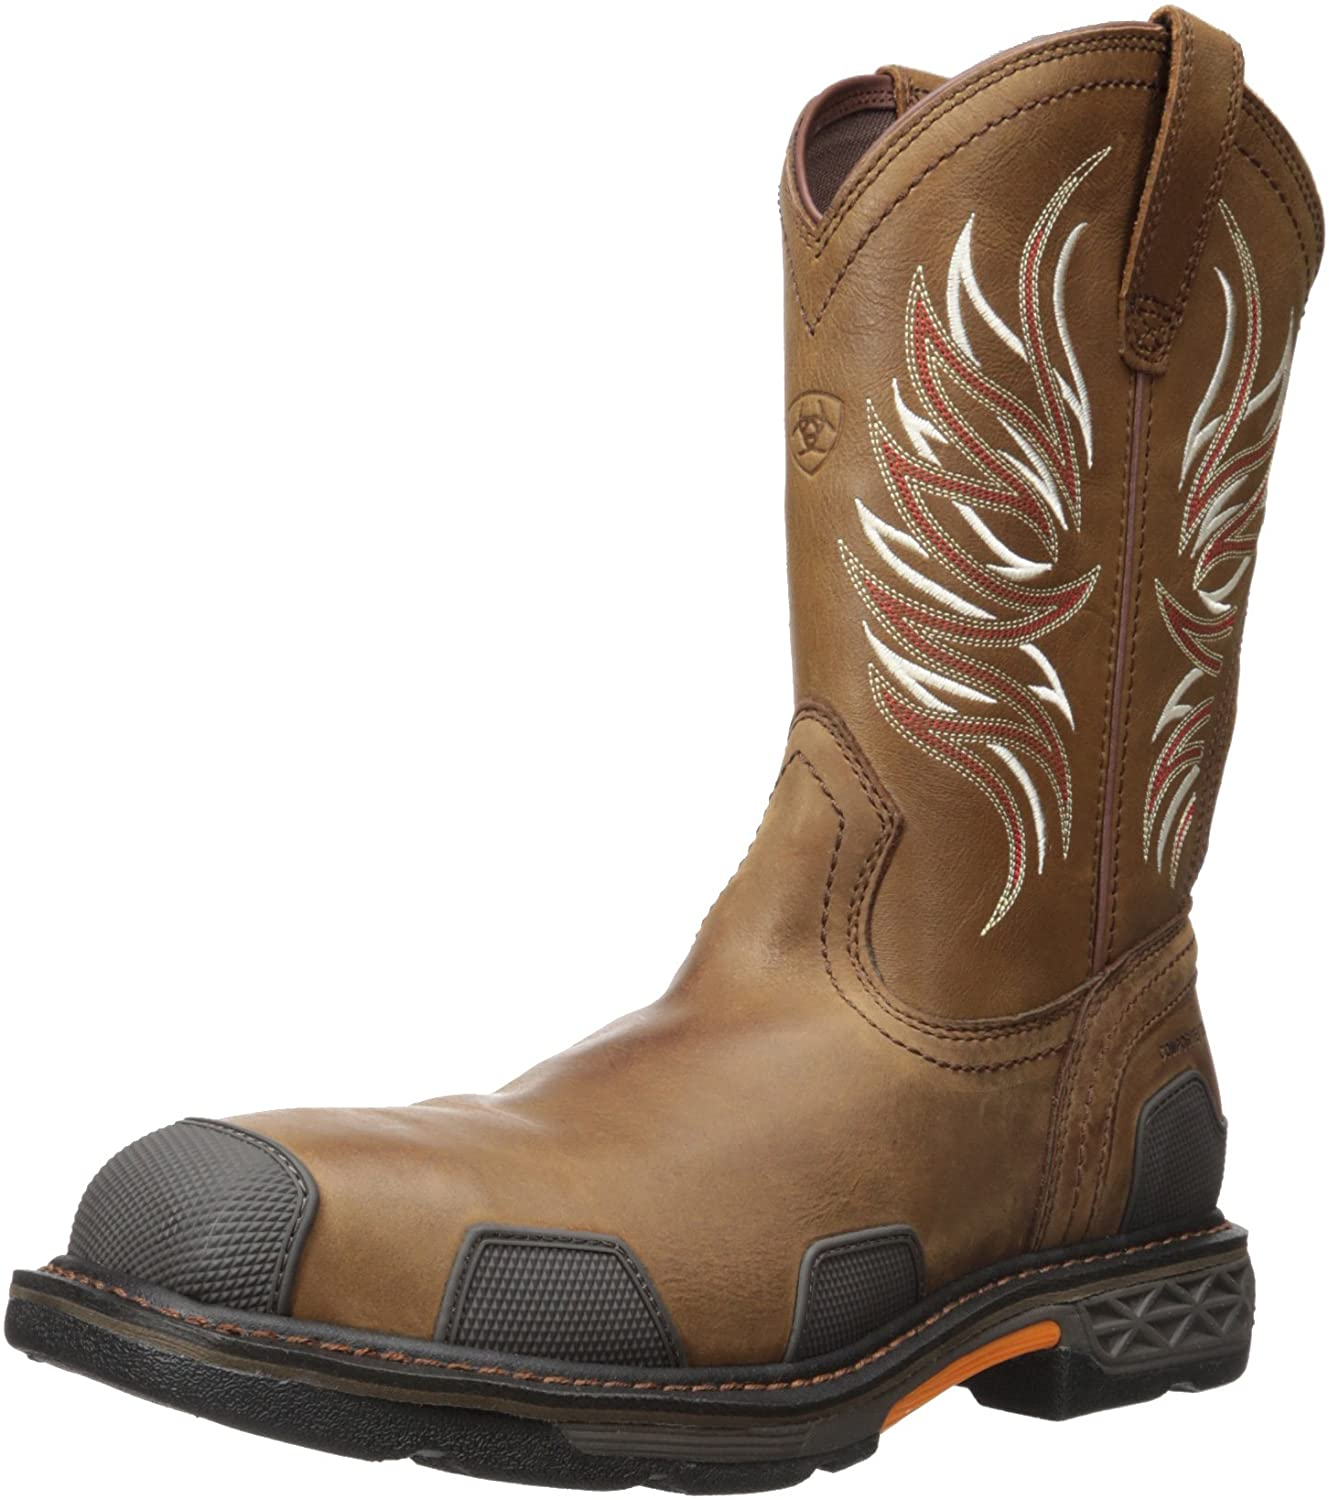 ARIAT Men's Overdrive Wide Square Toe Composite Toe Work Boot